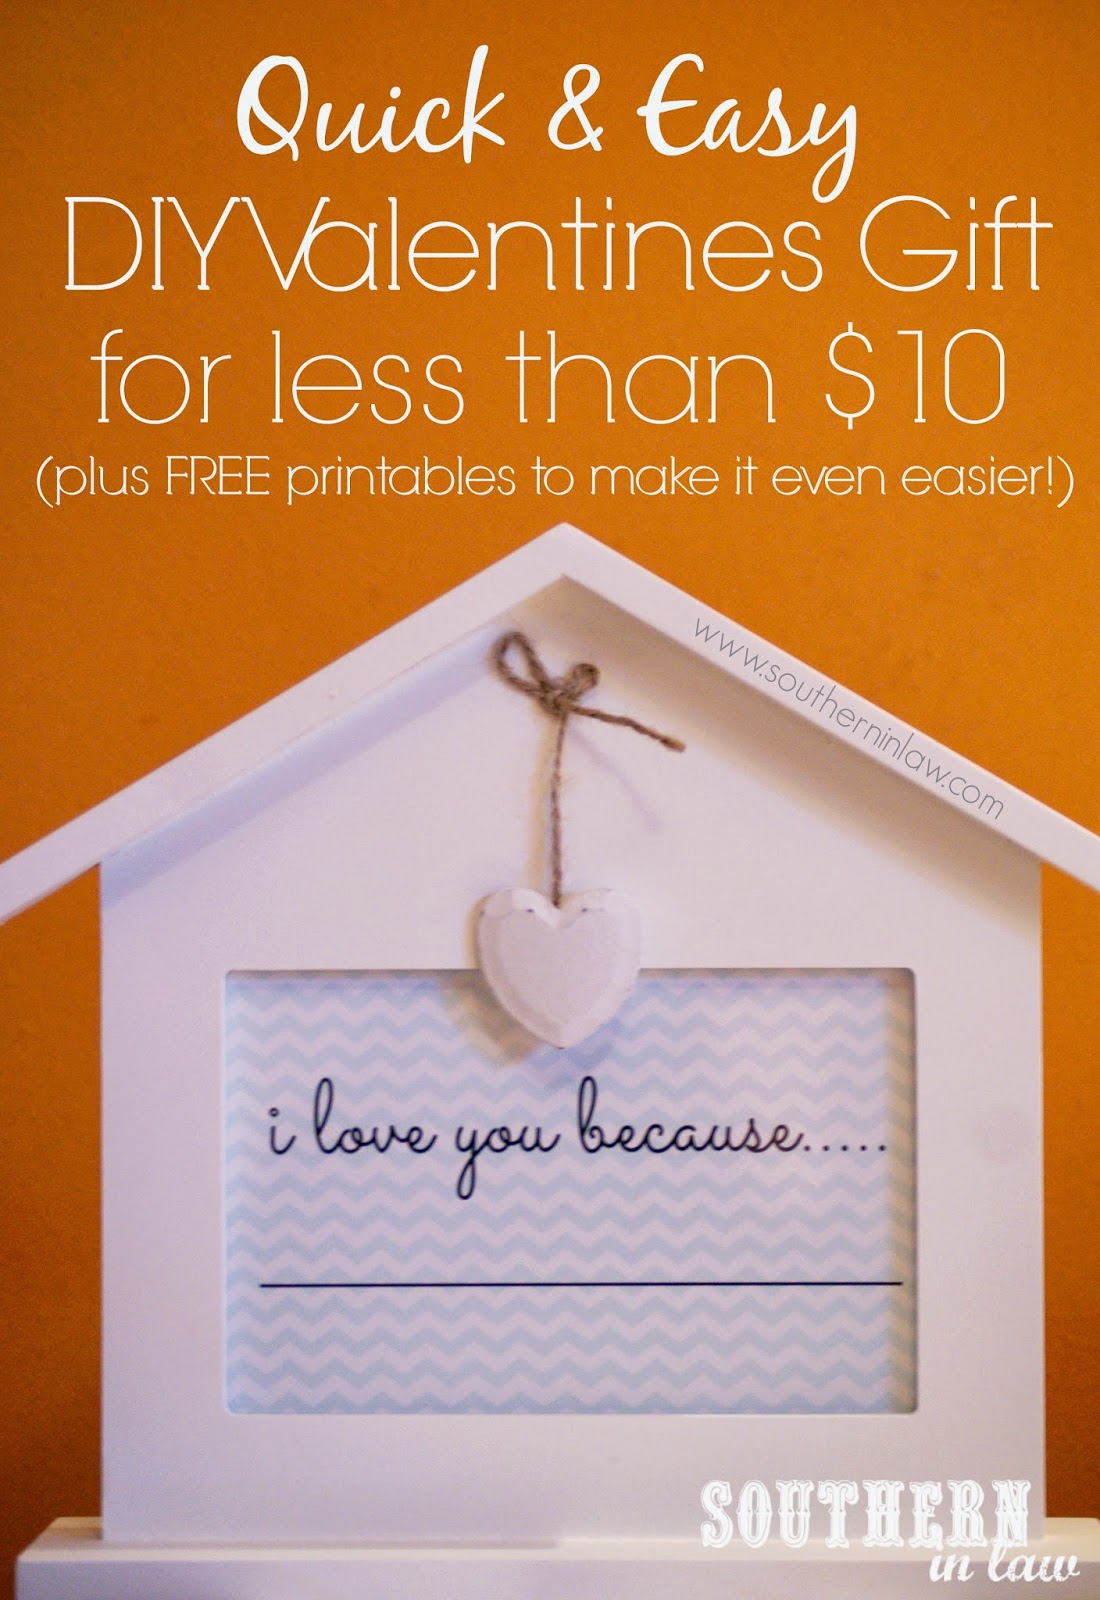 DIY Valentines Gift Ideas for less than $10  - I love you because sign